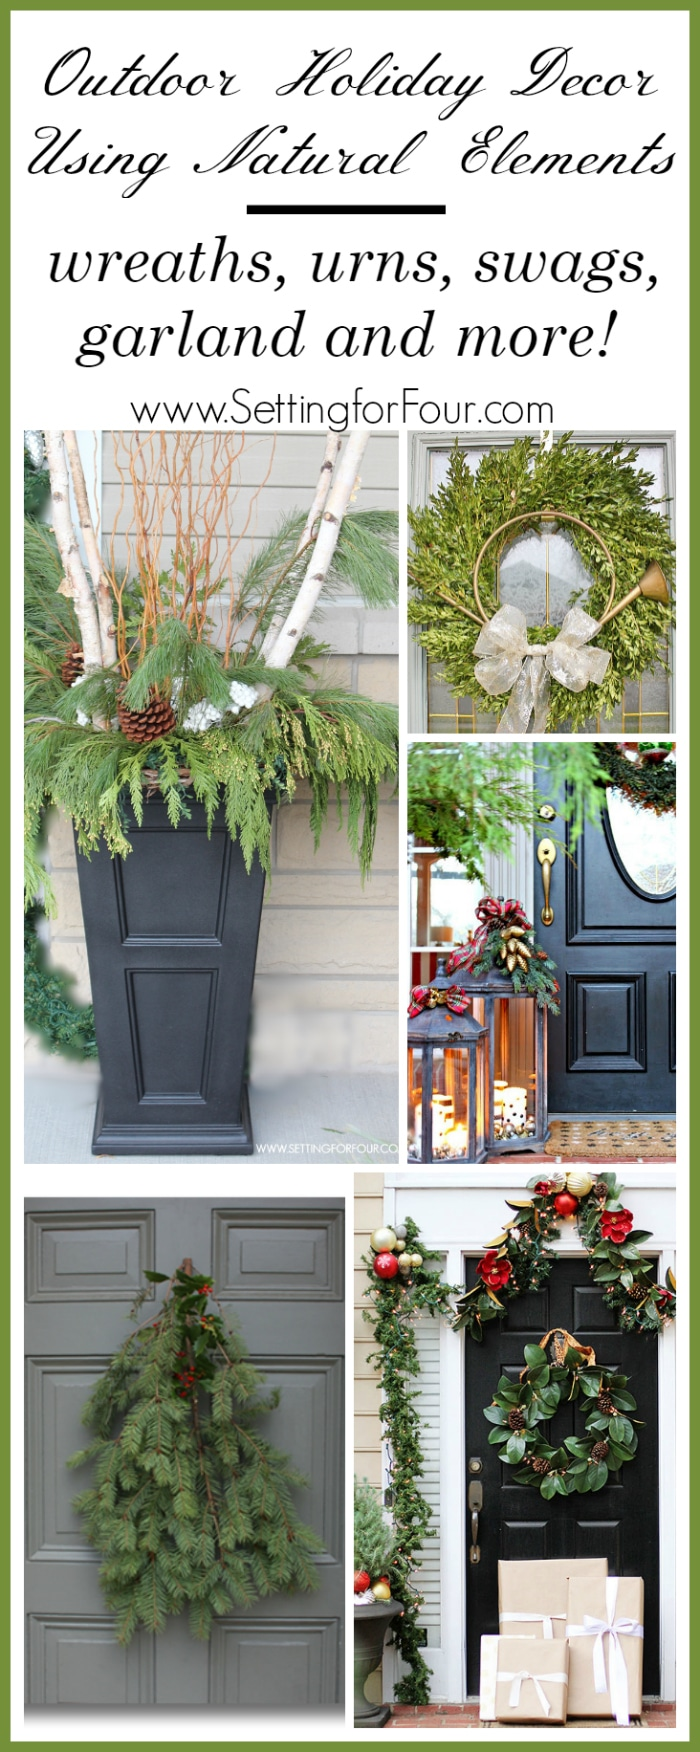 outdoor holiday decor using natural elements how to decorate your home outdoors with natural elements - Natural Outdoor Christmas Decorations